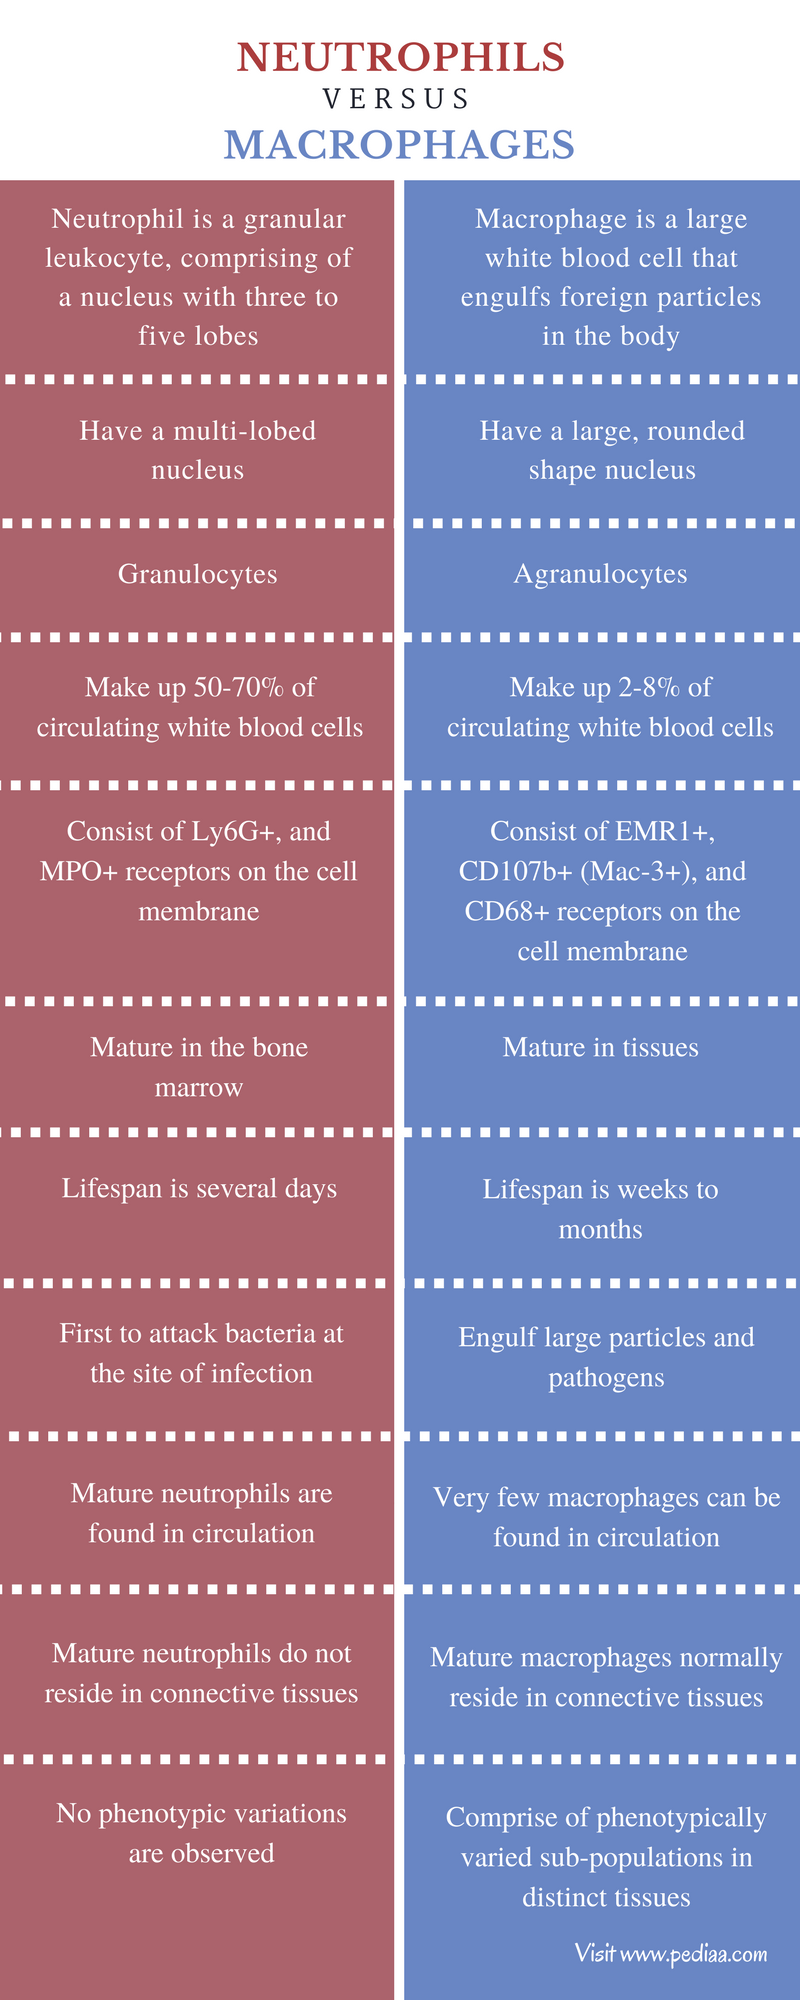 Difference Between Neutrophils and Macrophages - Comparison Summary